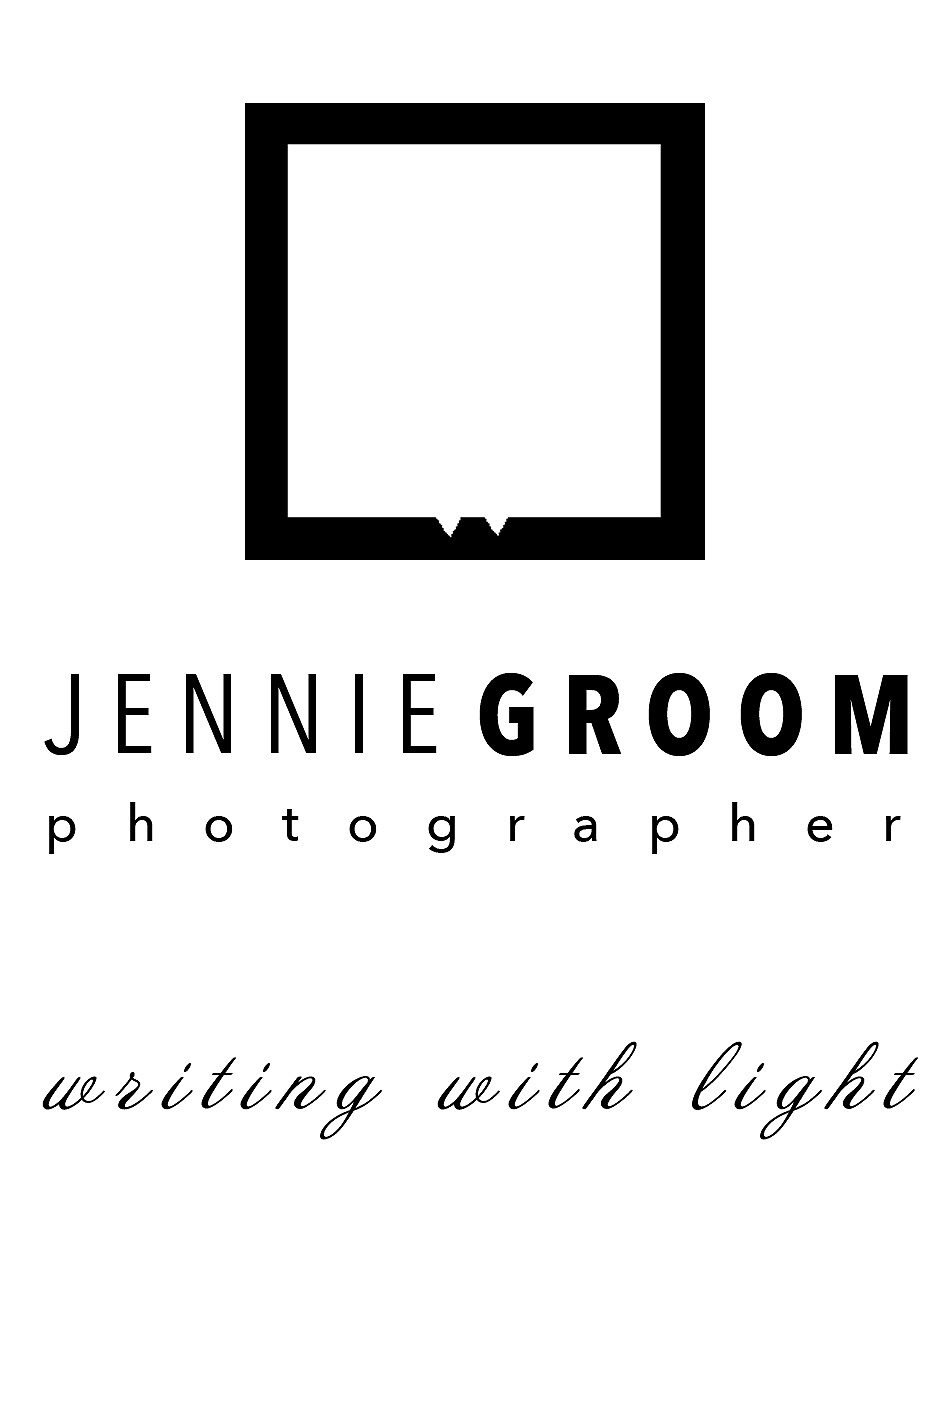 Jennie Groom Photographer